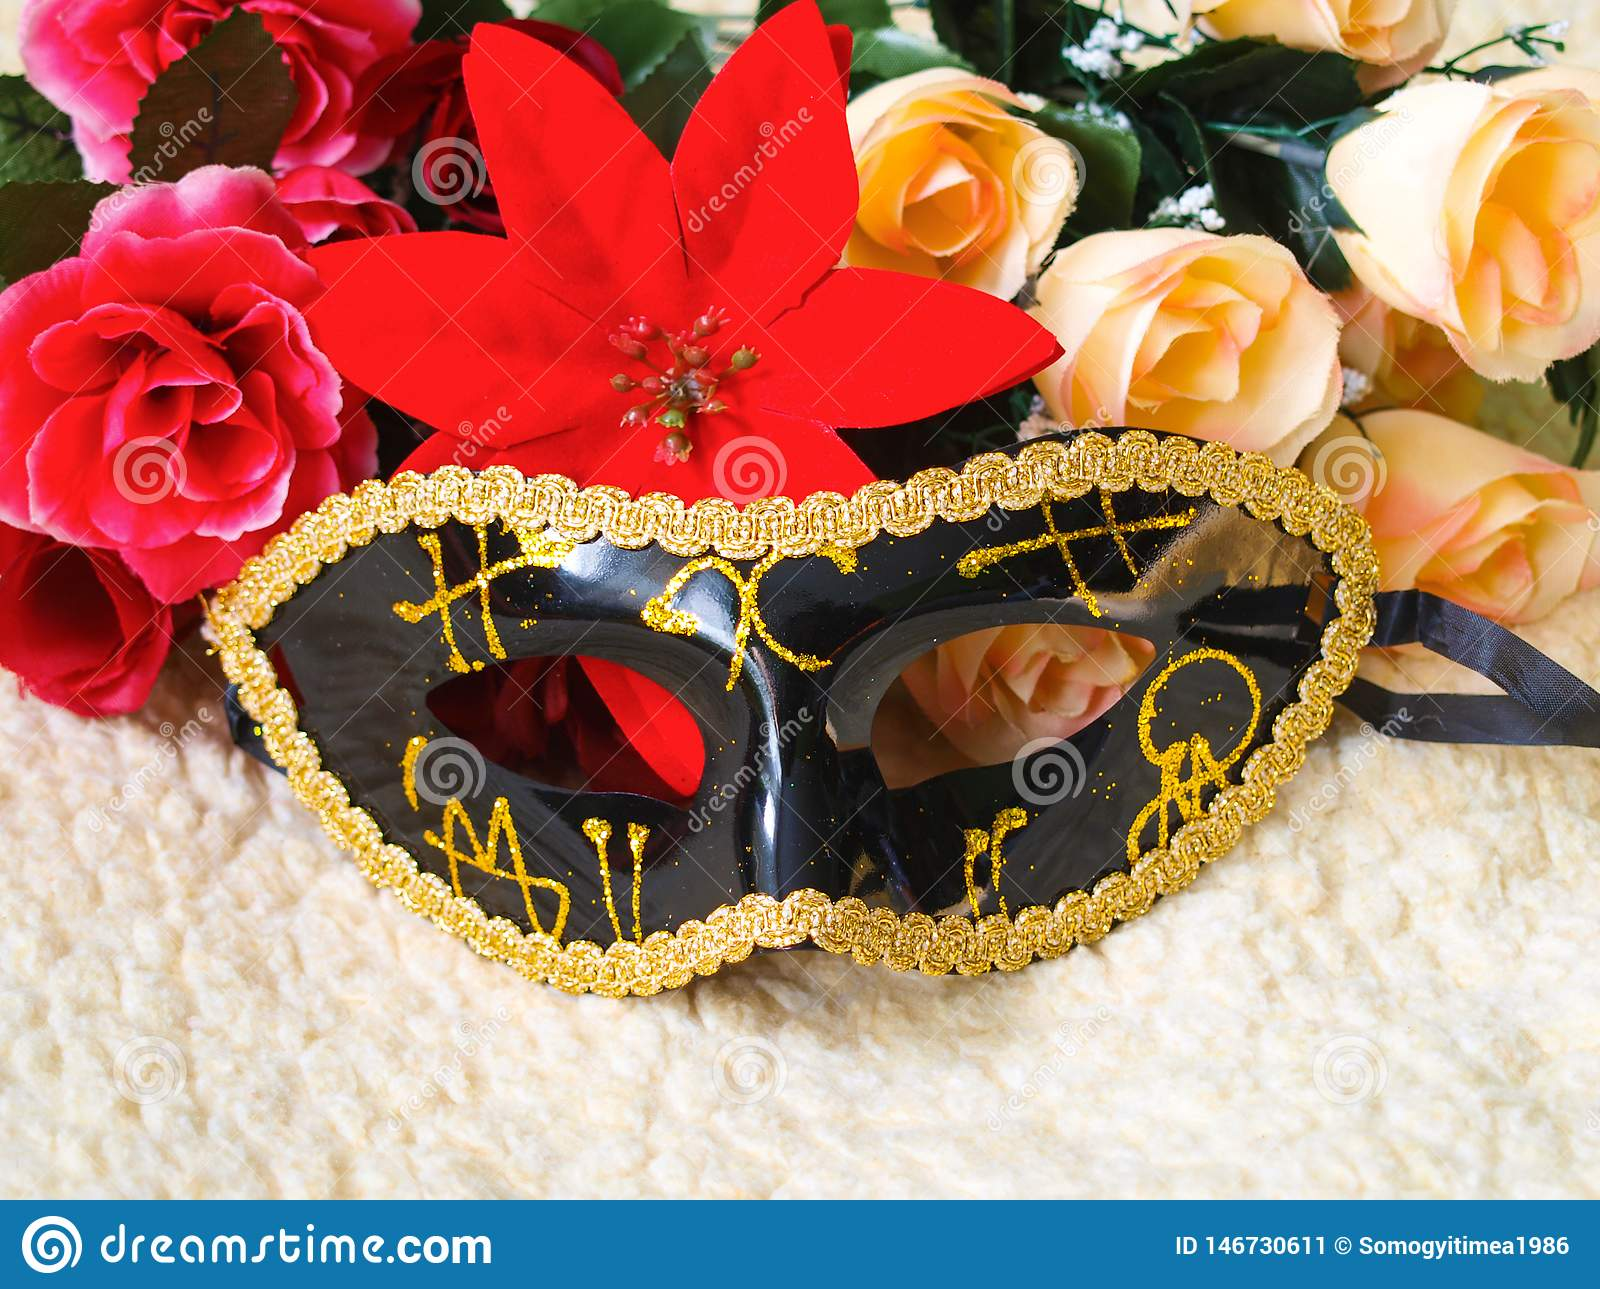 Black venetian mask with gold decorations, flowers